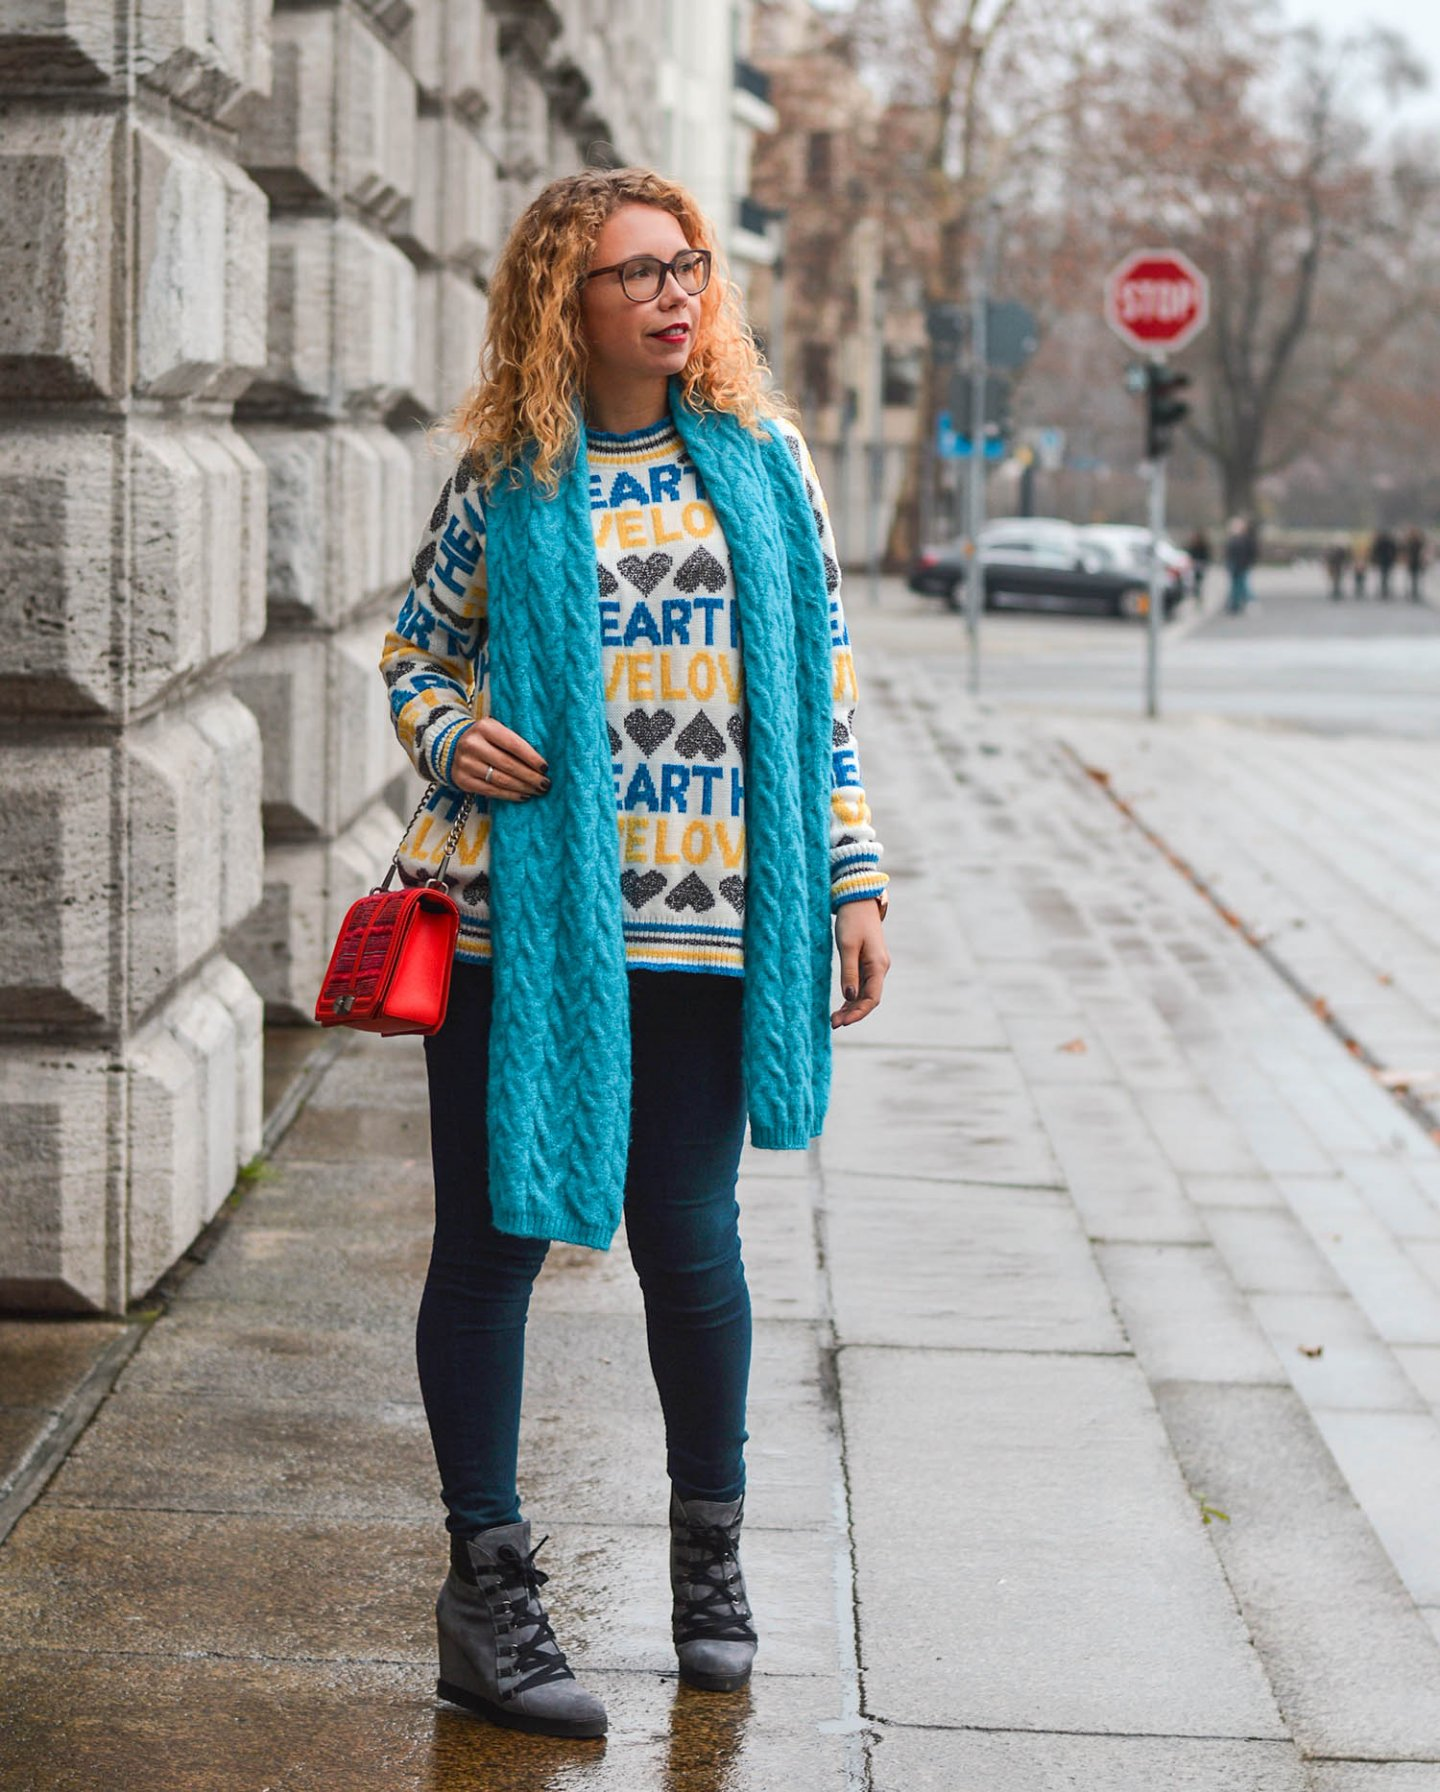 Statement-Pullover-XLSchal-Keilboots-Outfit-Kationette-Fashionblog-Germany